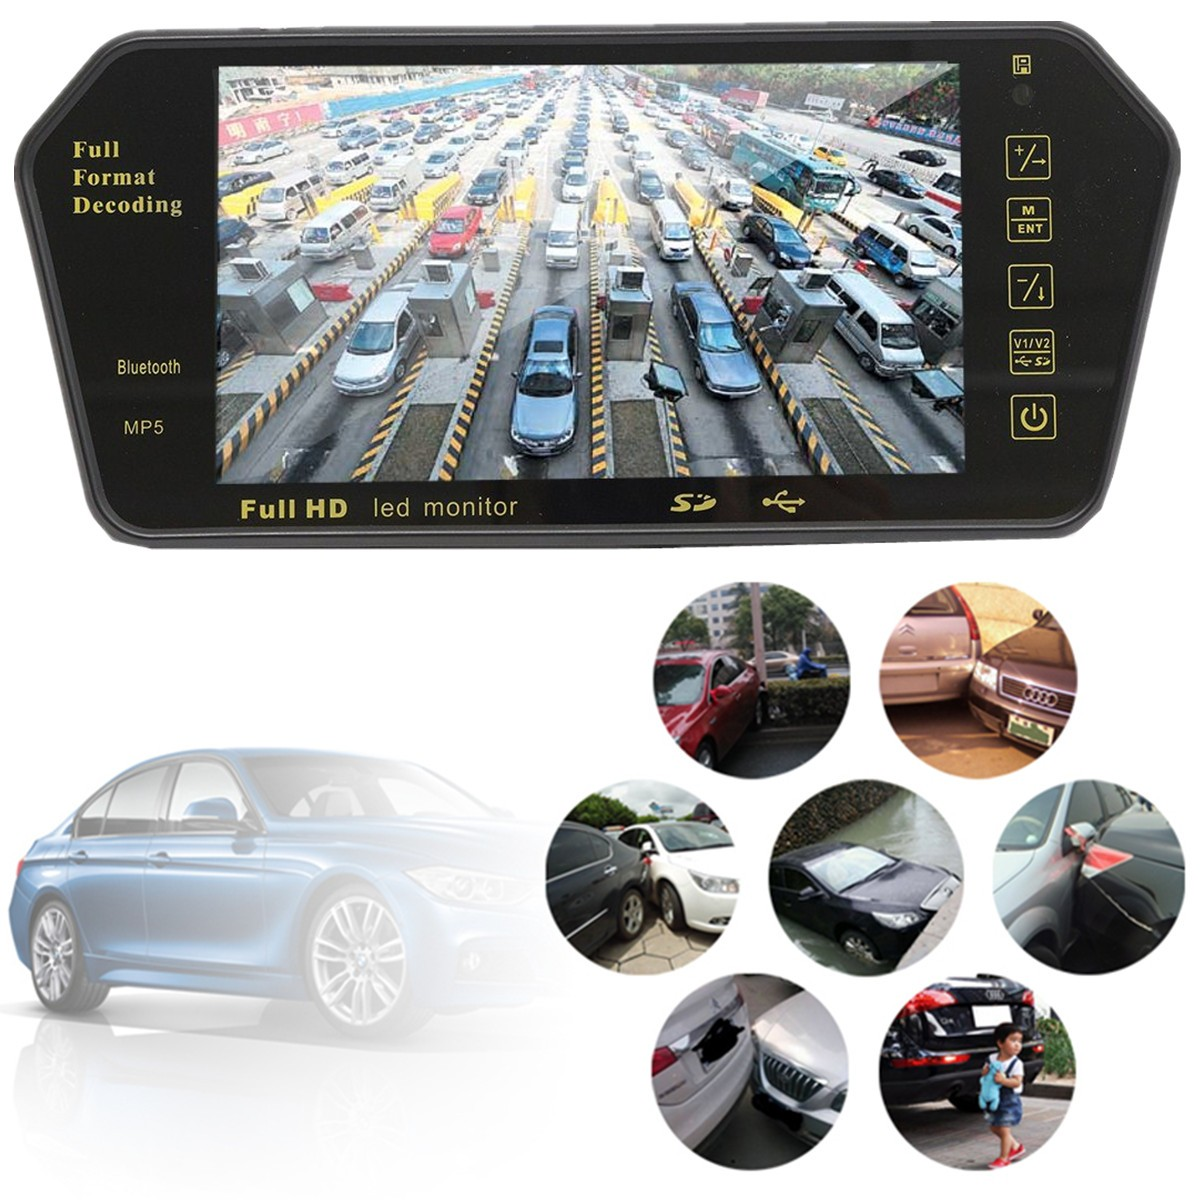 7 Inch Bluetooth TFT LCD Color Mirror Monitor Viedo MP5 Player For Car Auto Rearview Monitors Backup Reversing Vehicle Camera